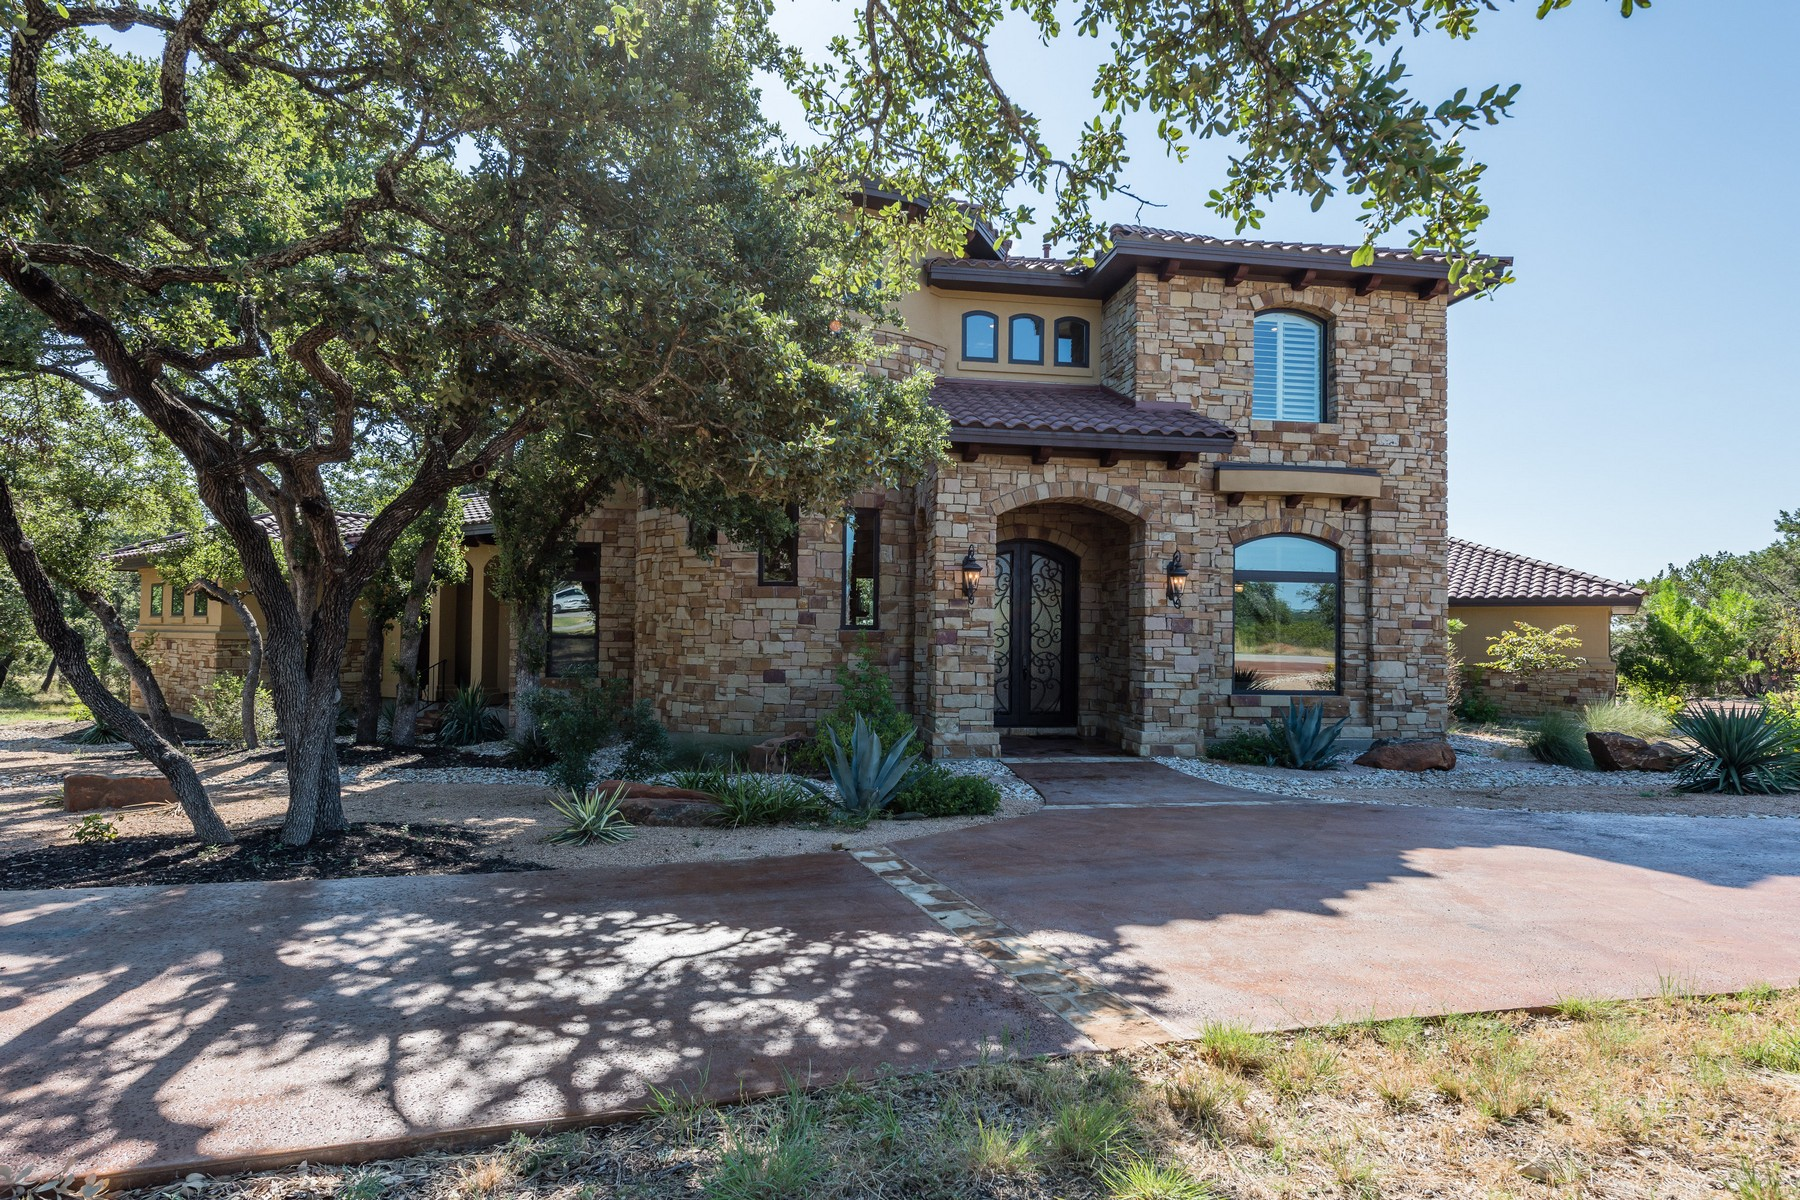 Single Family Home for Sale at Coveted Corner Lot in Belvedere 8517 Bellancia Dr Austin, Texas 78738 United States